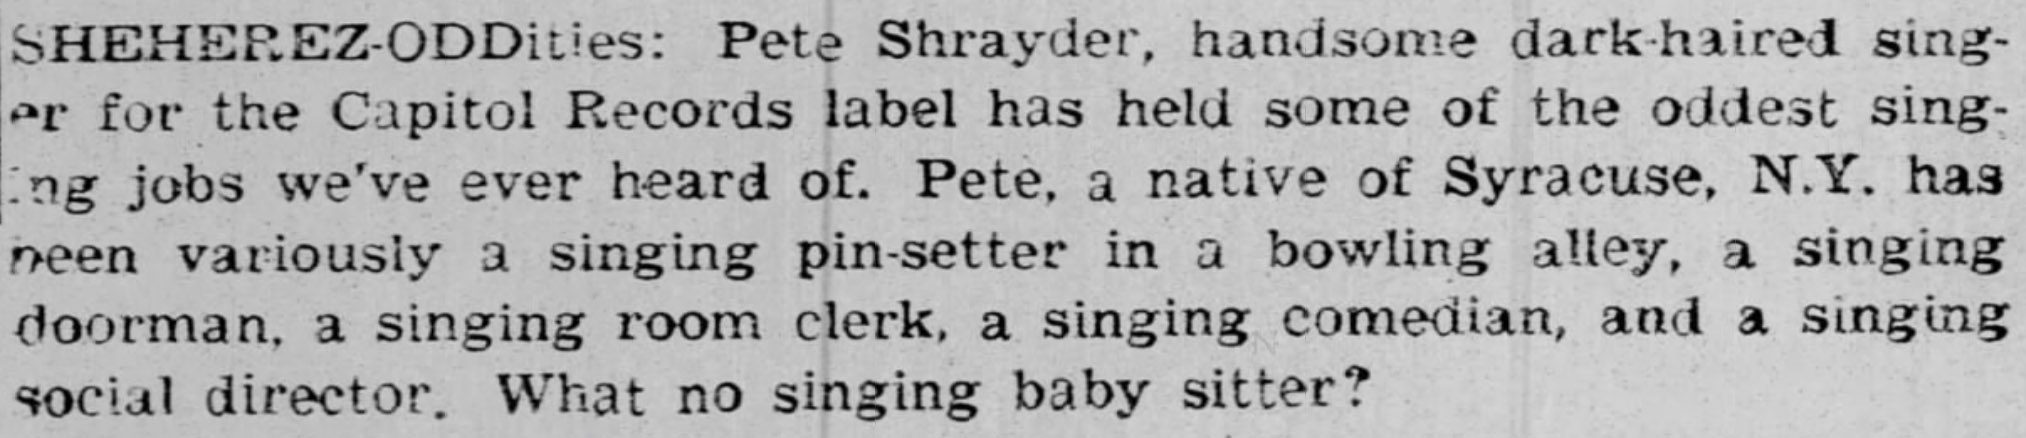 Pete Shrayder and his song Wheres the Girl for Me reemerged on TikTok more than 60 years after it was first released.